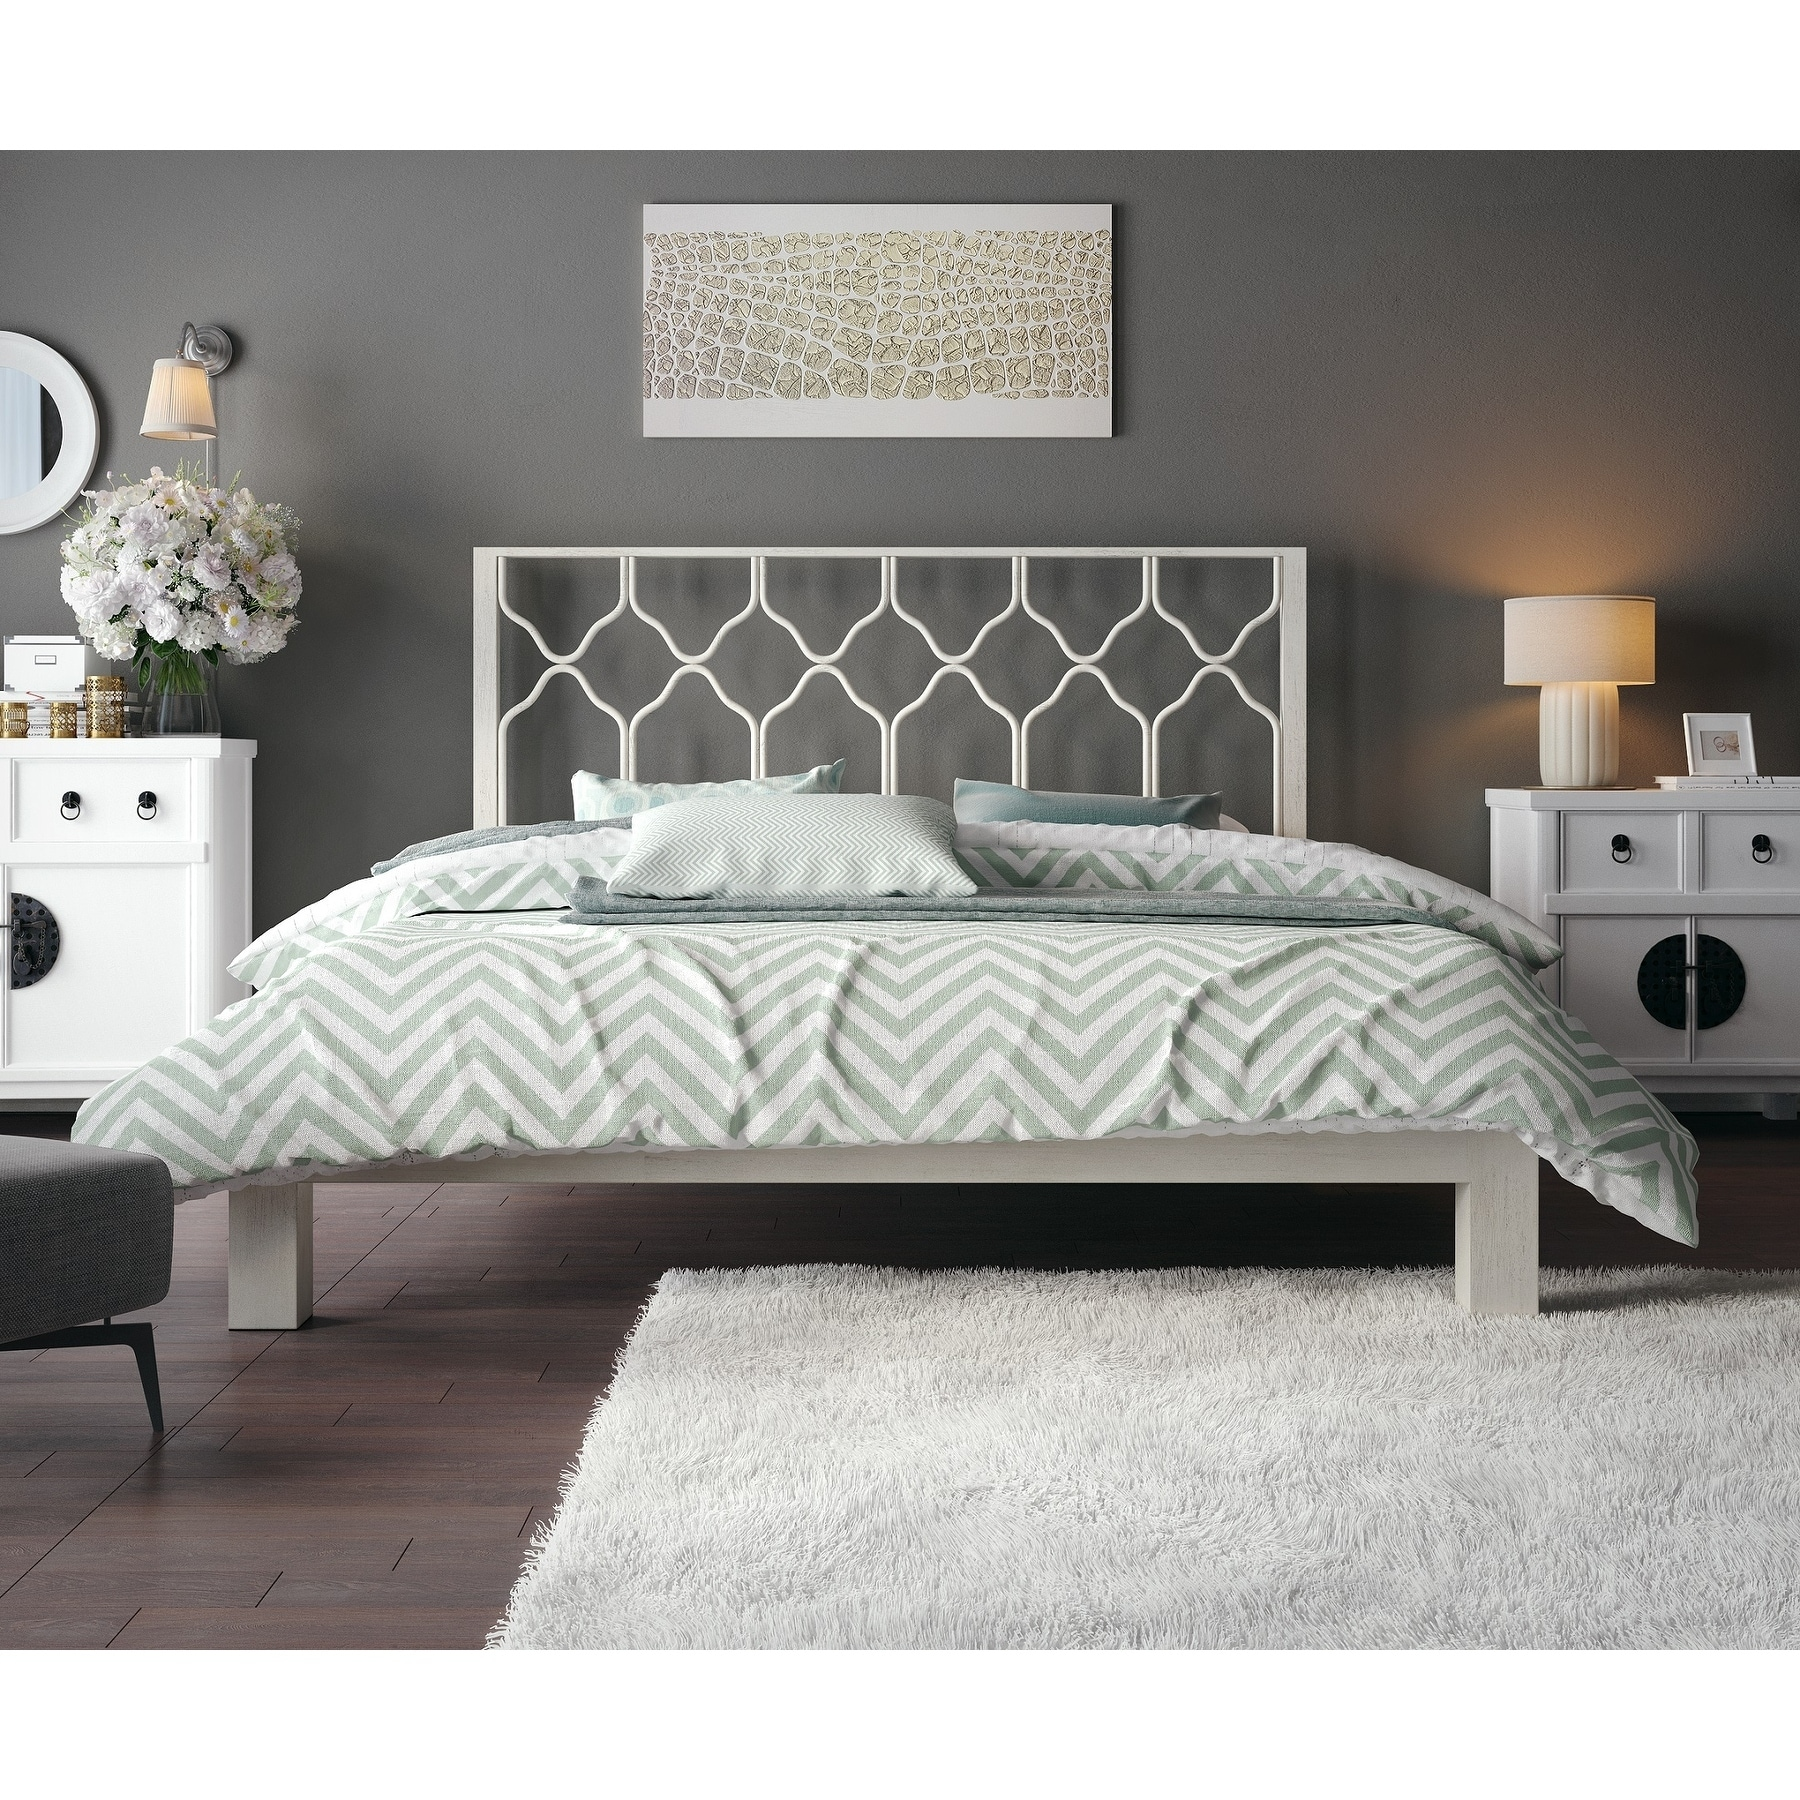 Shop honeycomb white metal headboard and aura platform bed free shipping today overstock com 11928092